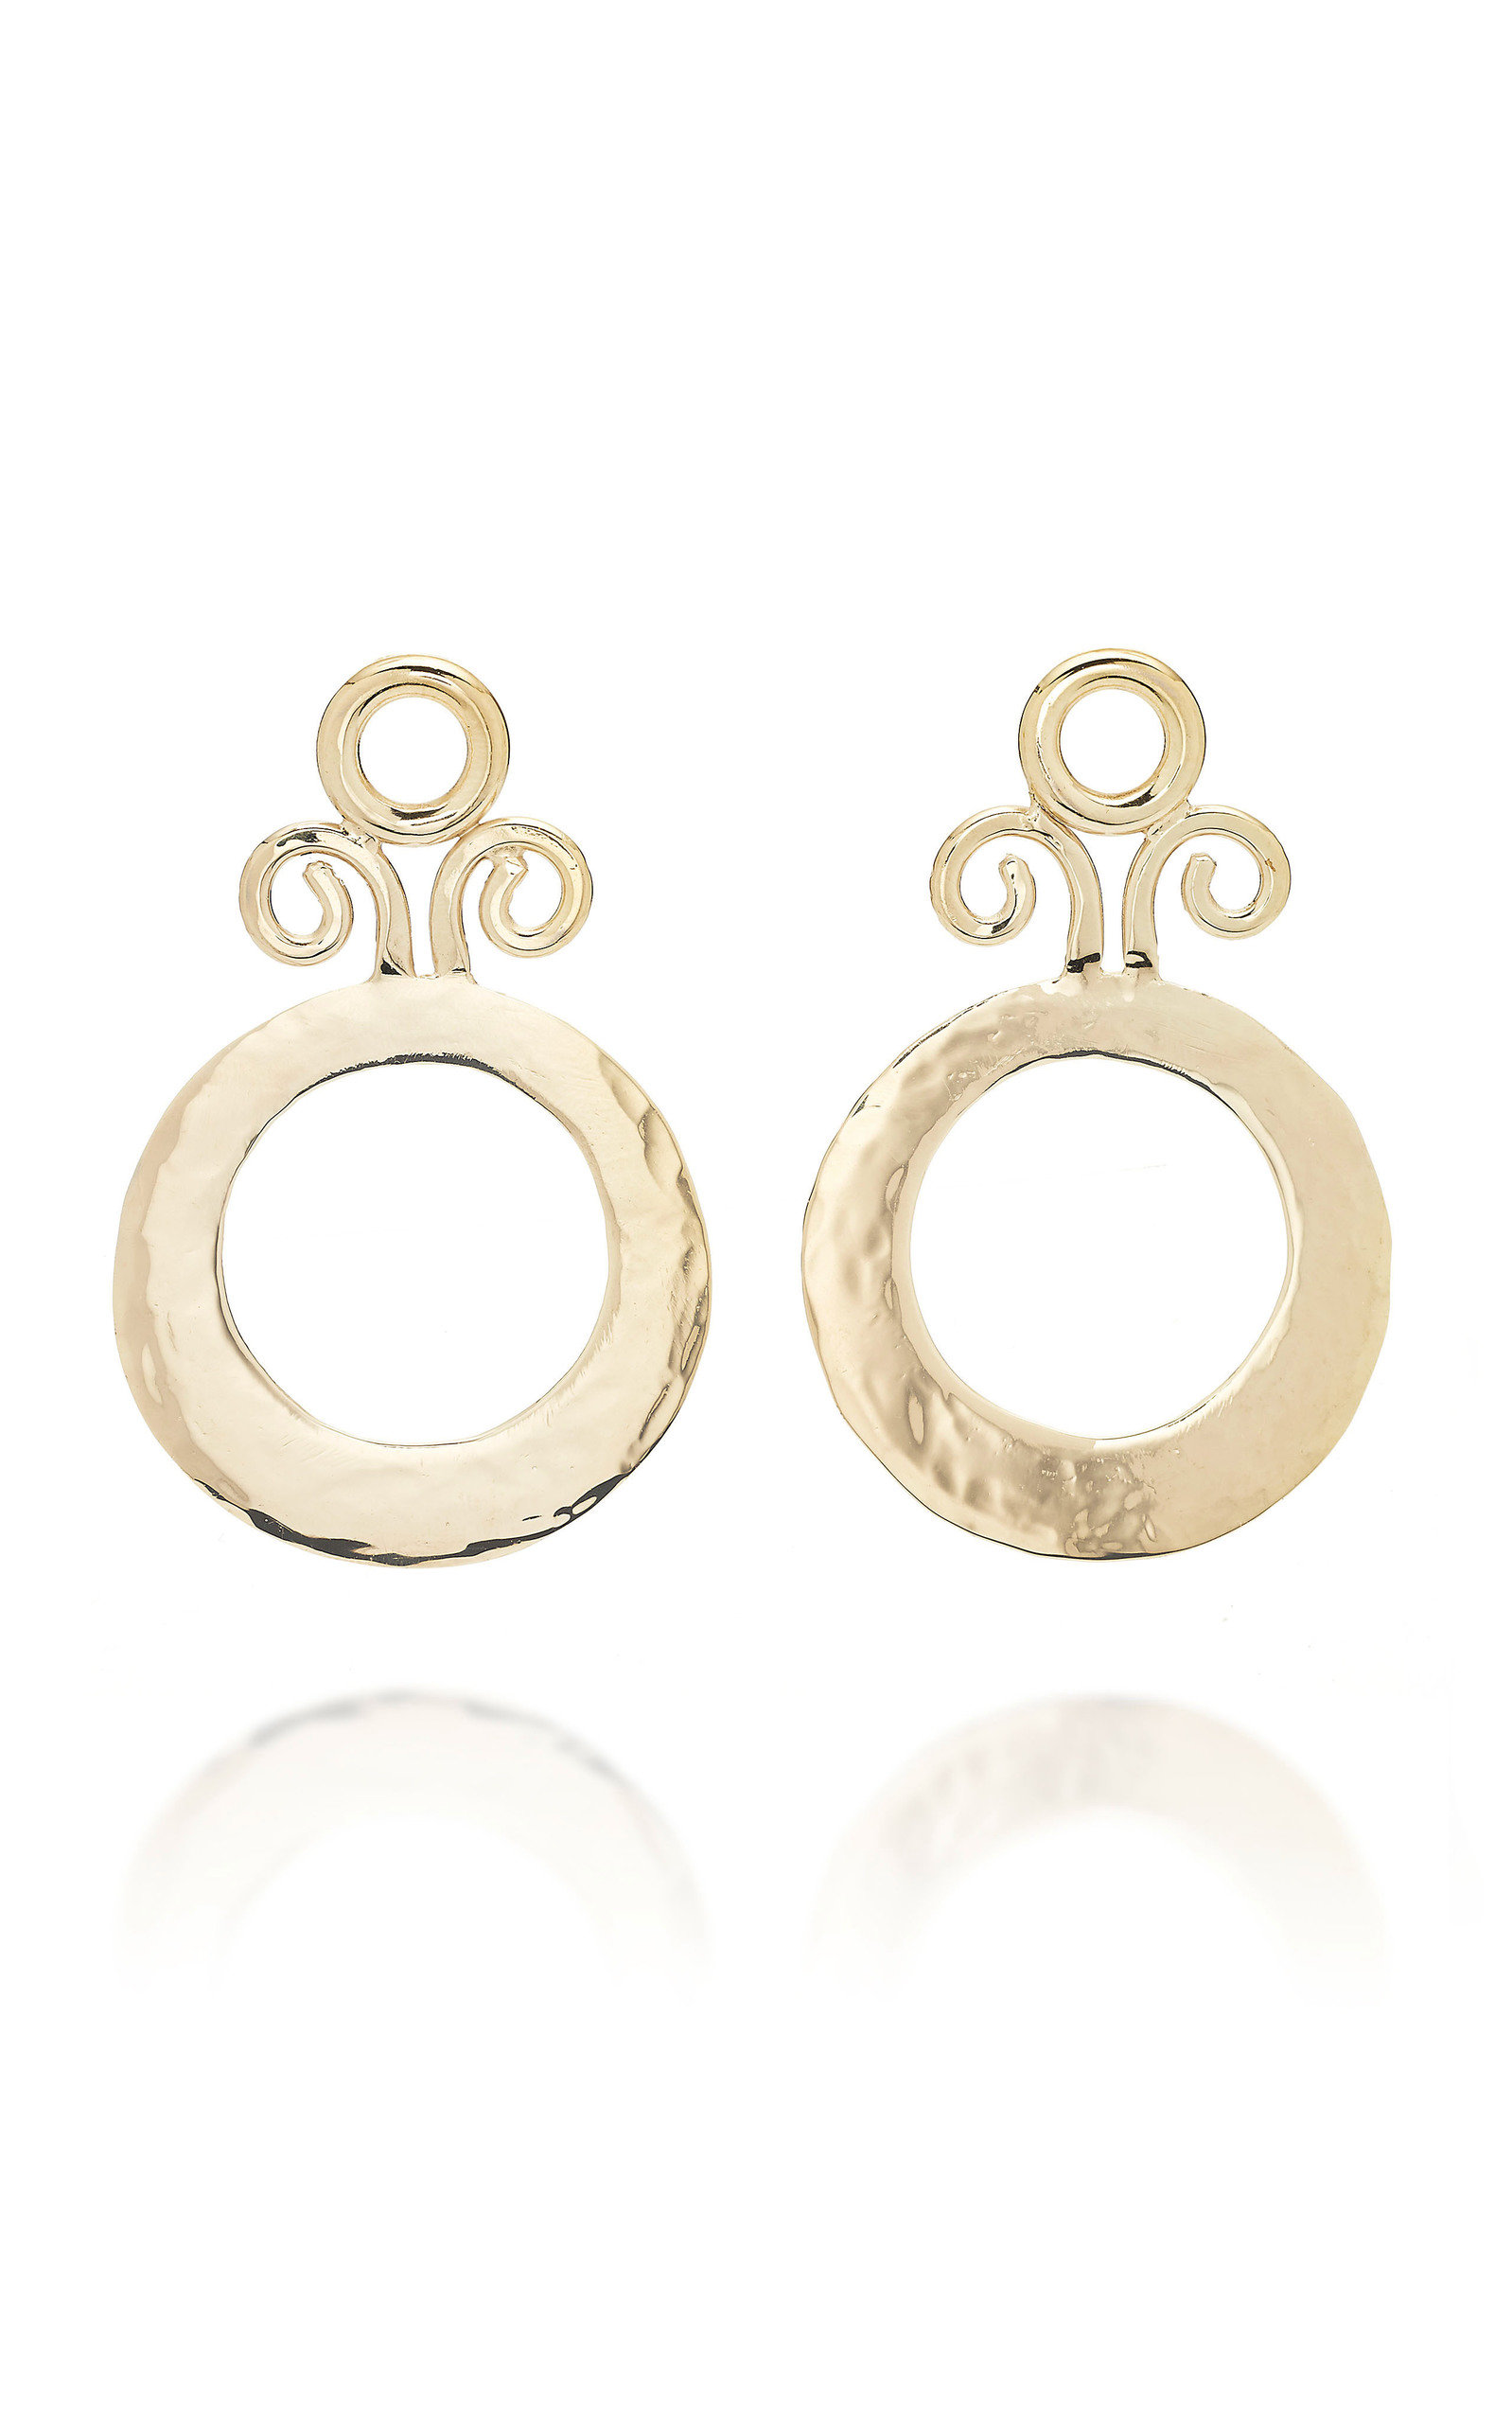 Aracano_Aros_Gold_Maracuya_Earrings_Moda_Operando.jpg